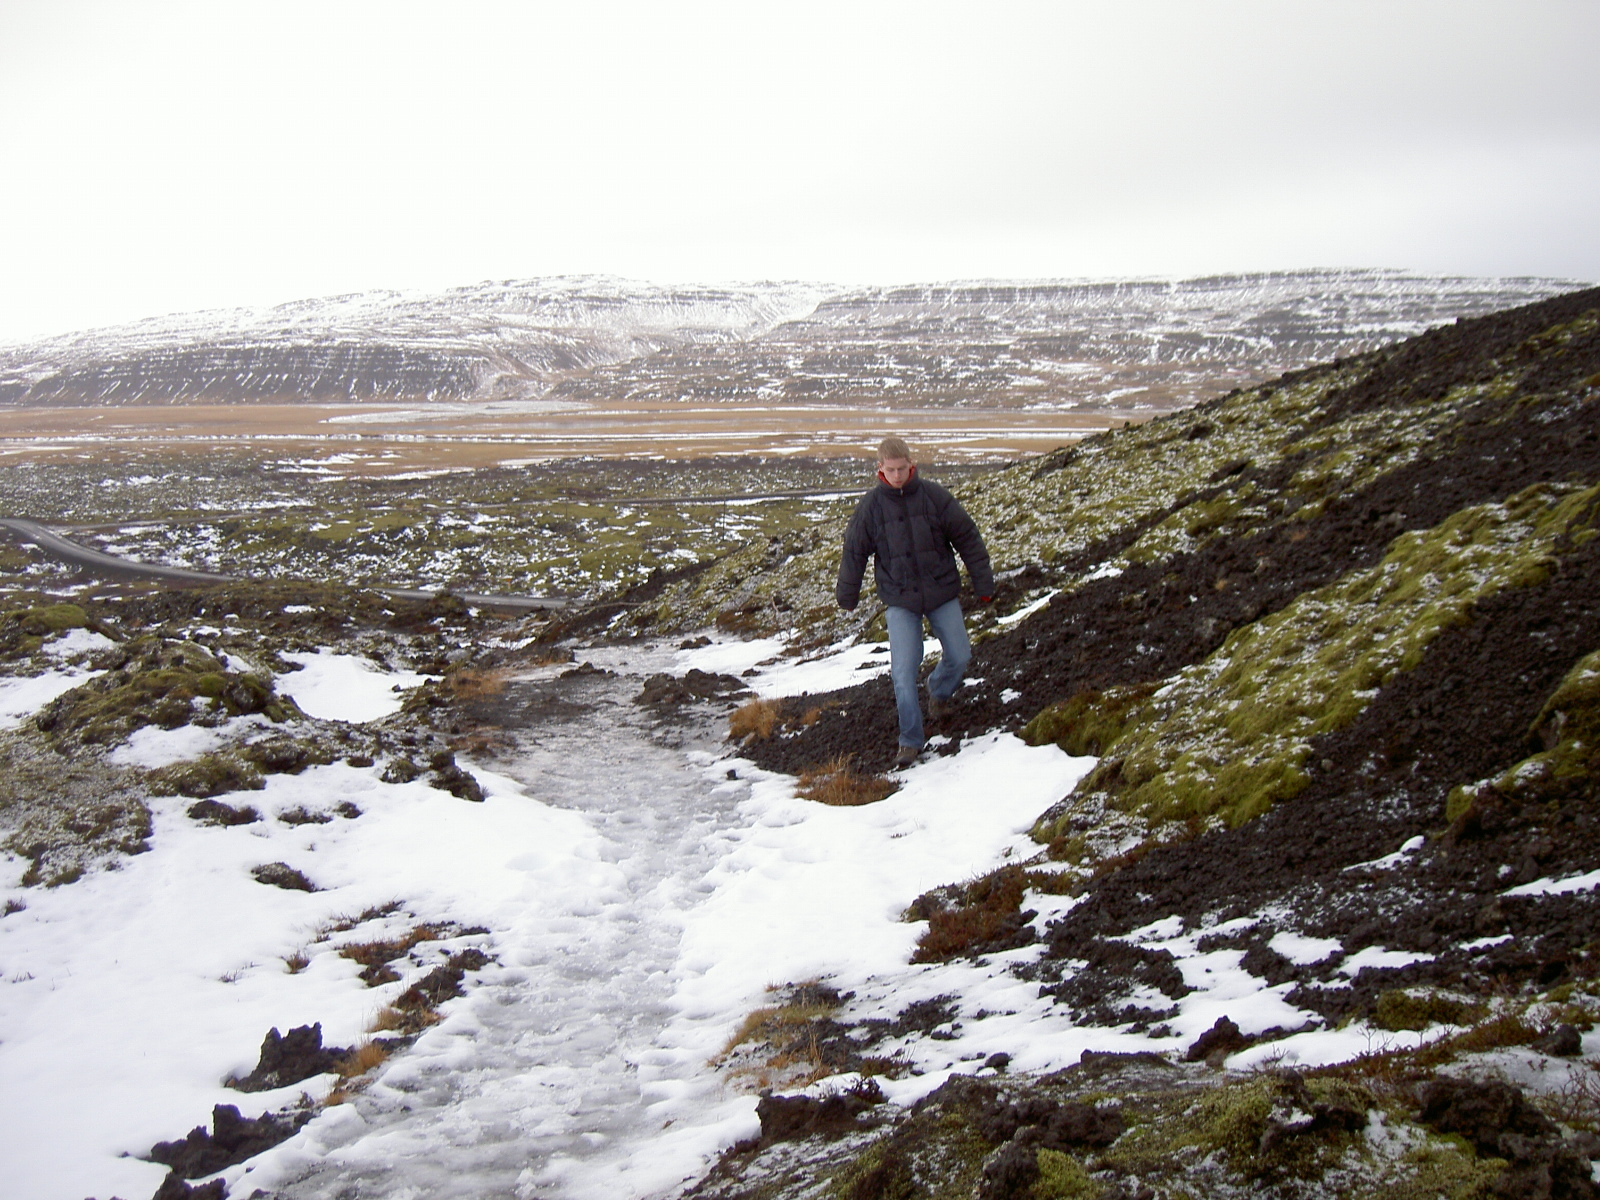 Bastiaan on the path to Grabrok crater (purpose of page is to display an image)